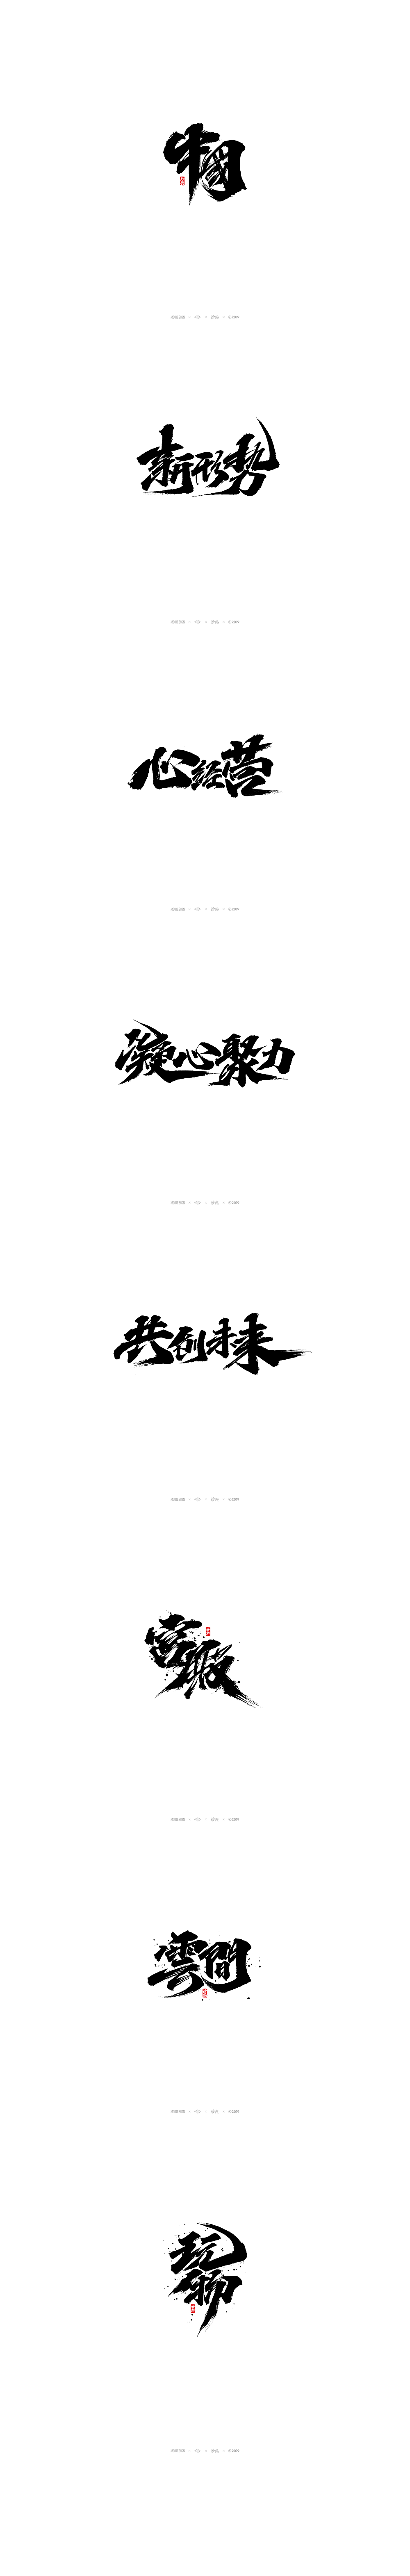 6P Different Expressions of Six Chinese Handwritten Calligraphy Fonts